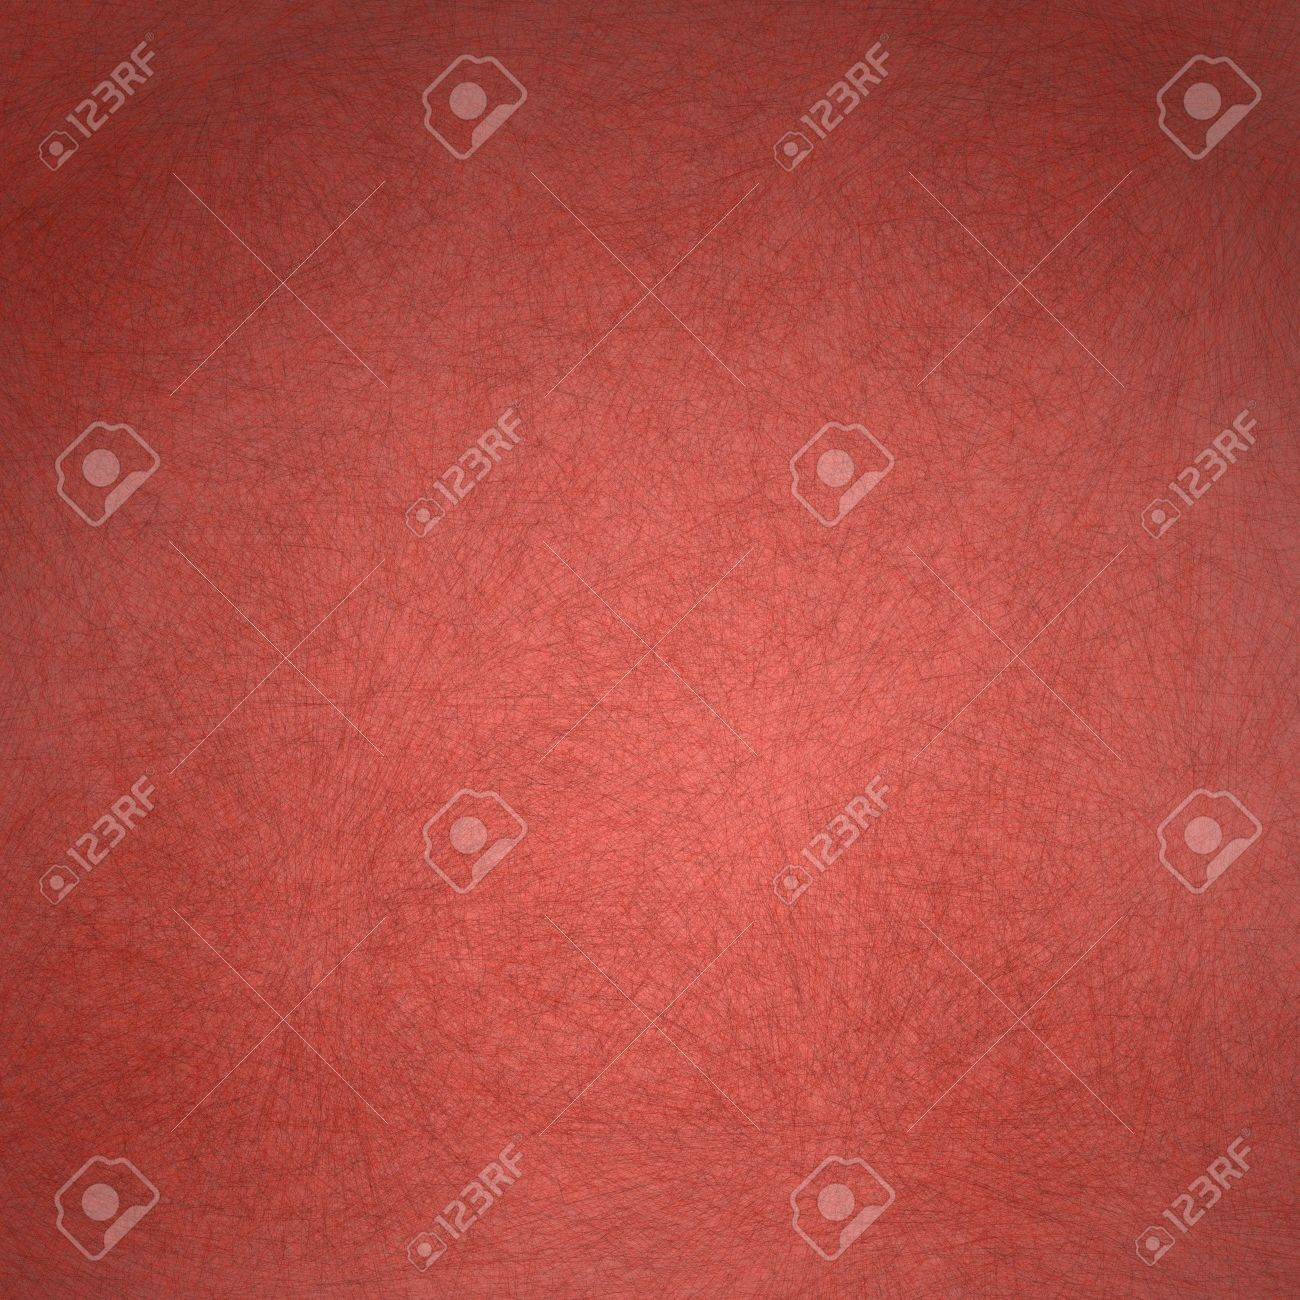 red background with old faded vintage grunge texture with darker edges on frame and bright center highlight for valentine s day text or Christmas backdrop Stock Photo - 13002360